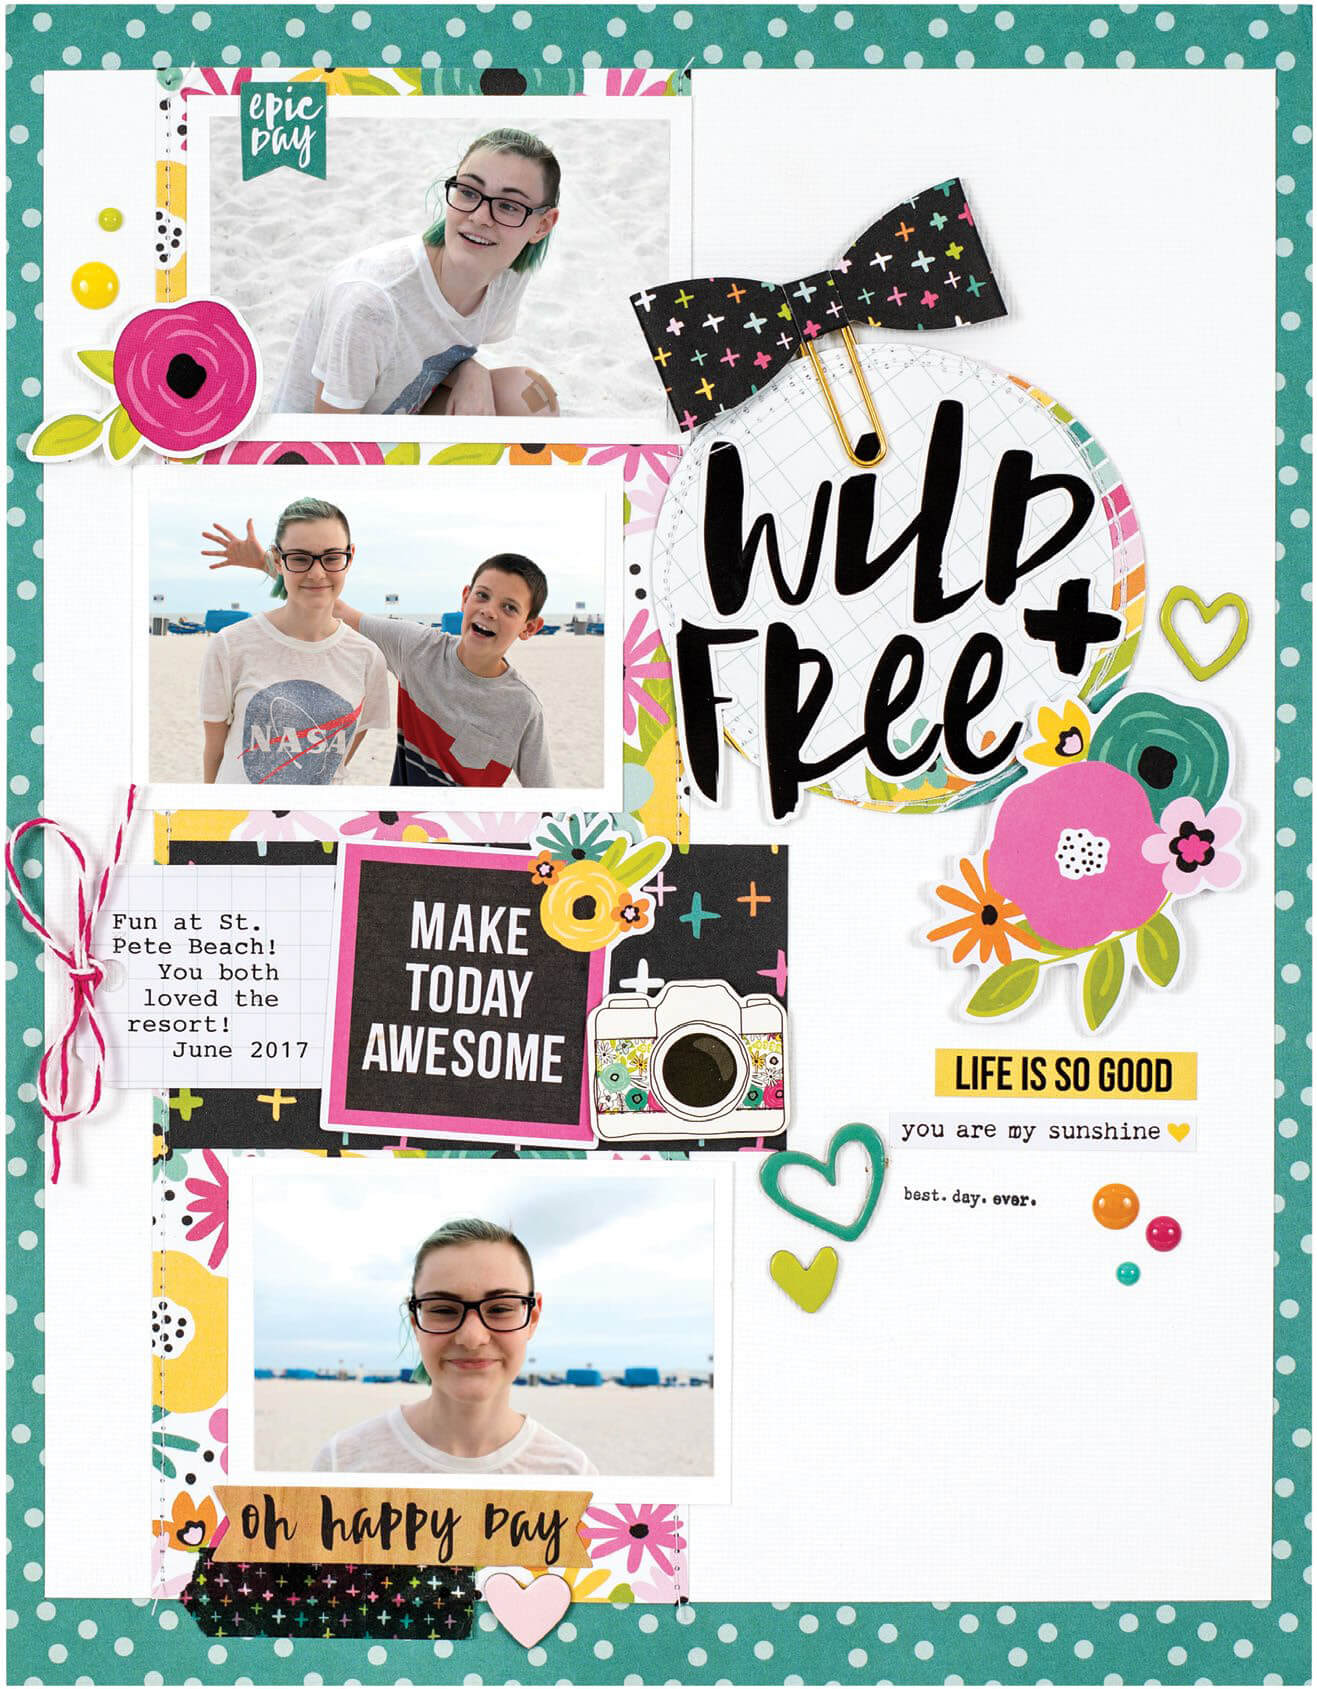 Scrapbook & Cards Today - Summer 2019 - Wild + Free layout by Jennifer Haggerty